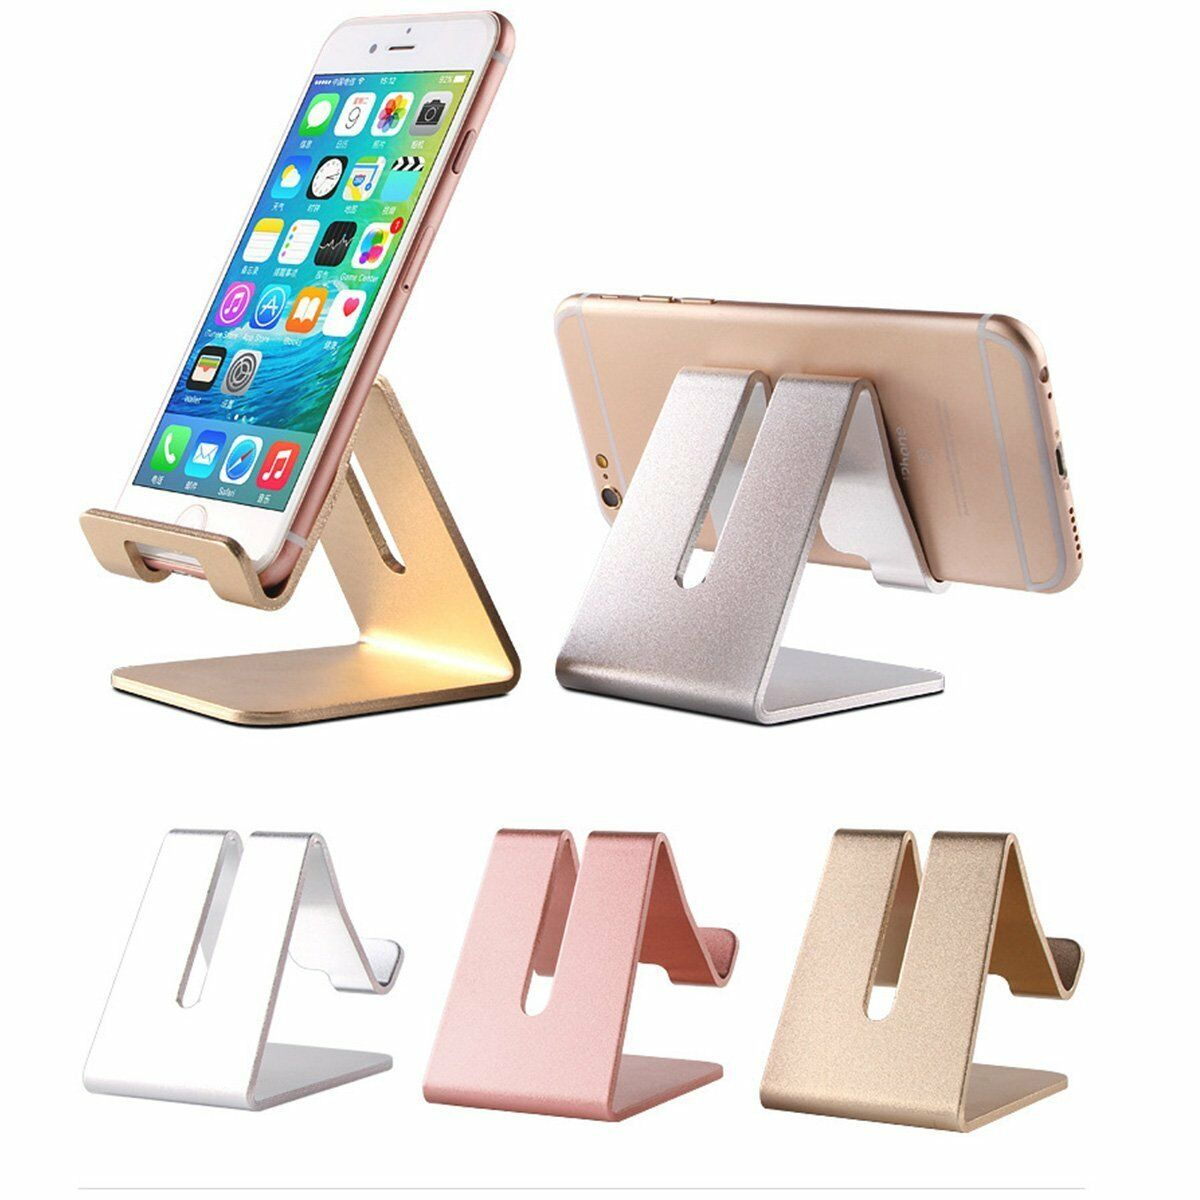 Universal Generic Aluminum Cell Phone Desk Stand Holder For